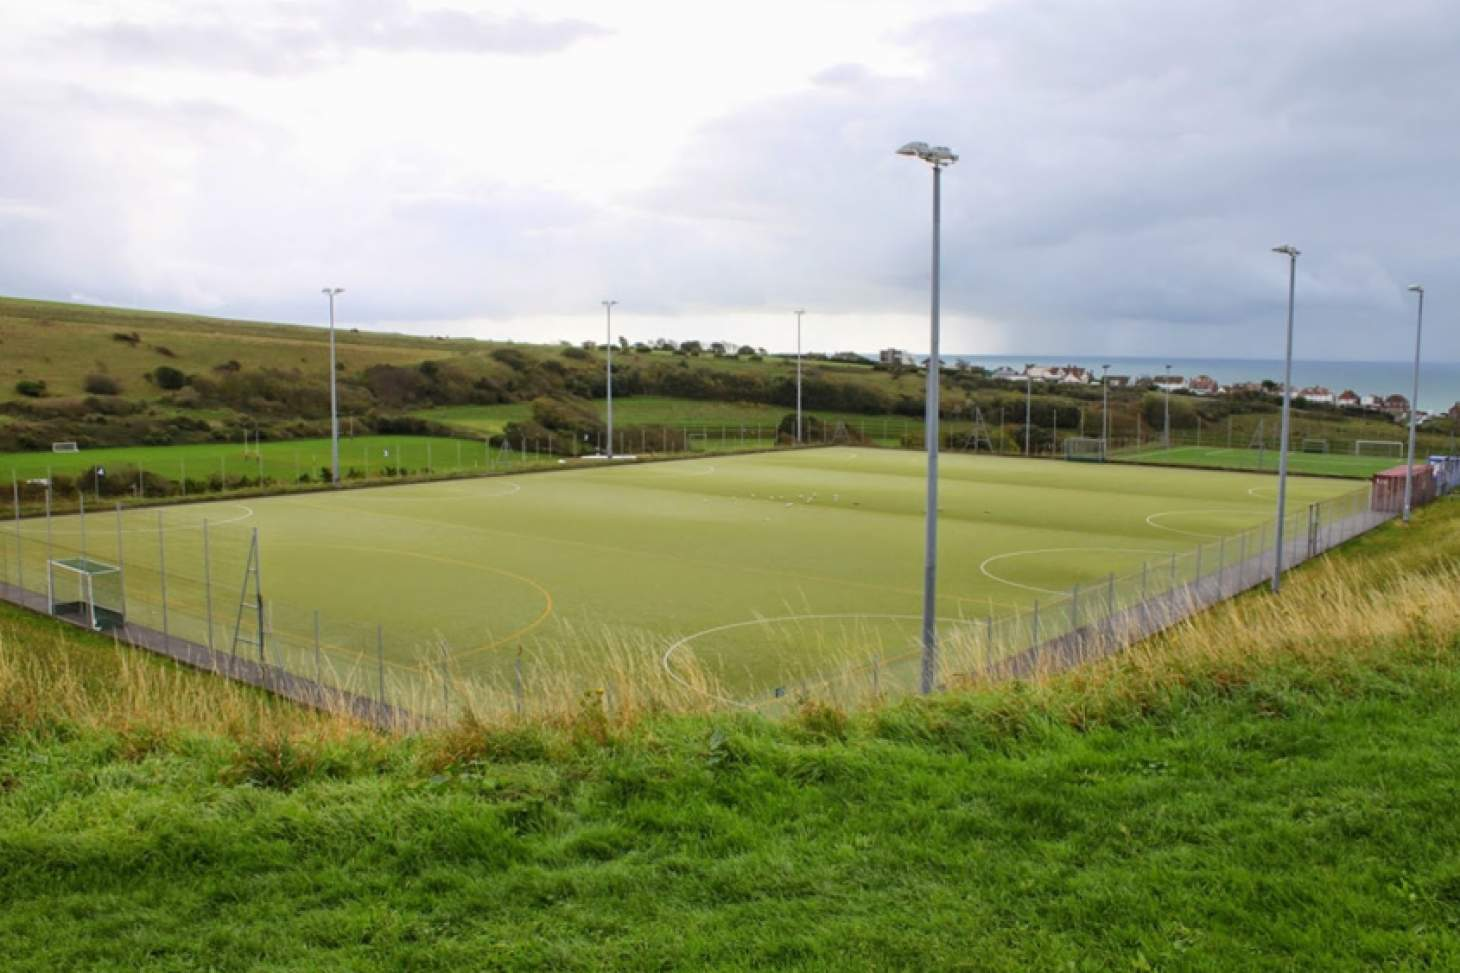 Stanley Deason Leisure Centre 7 a side | Astroturf football pitch